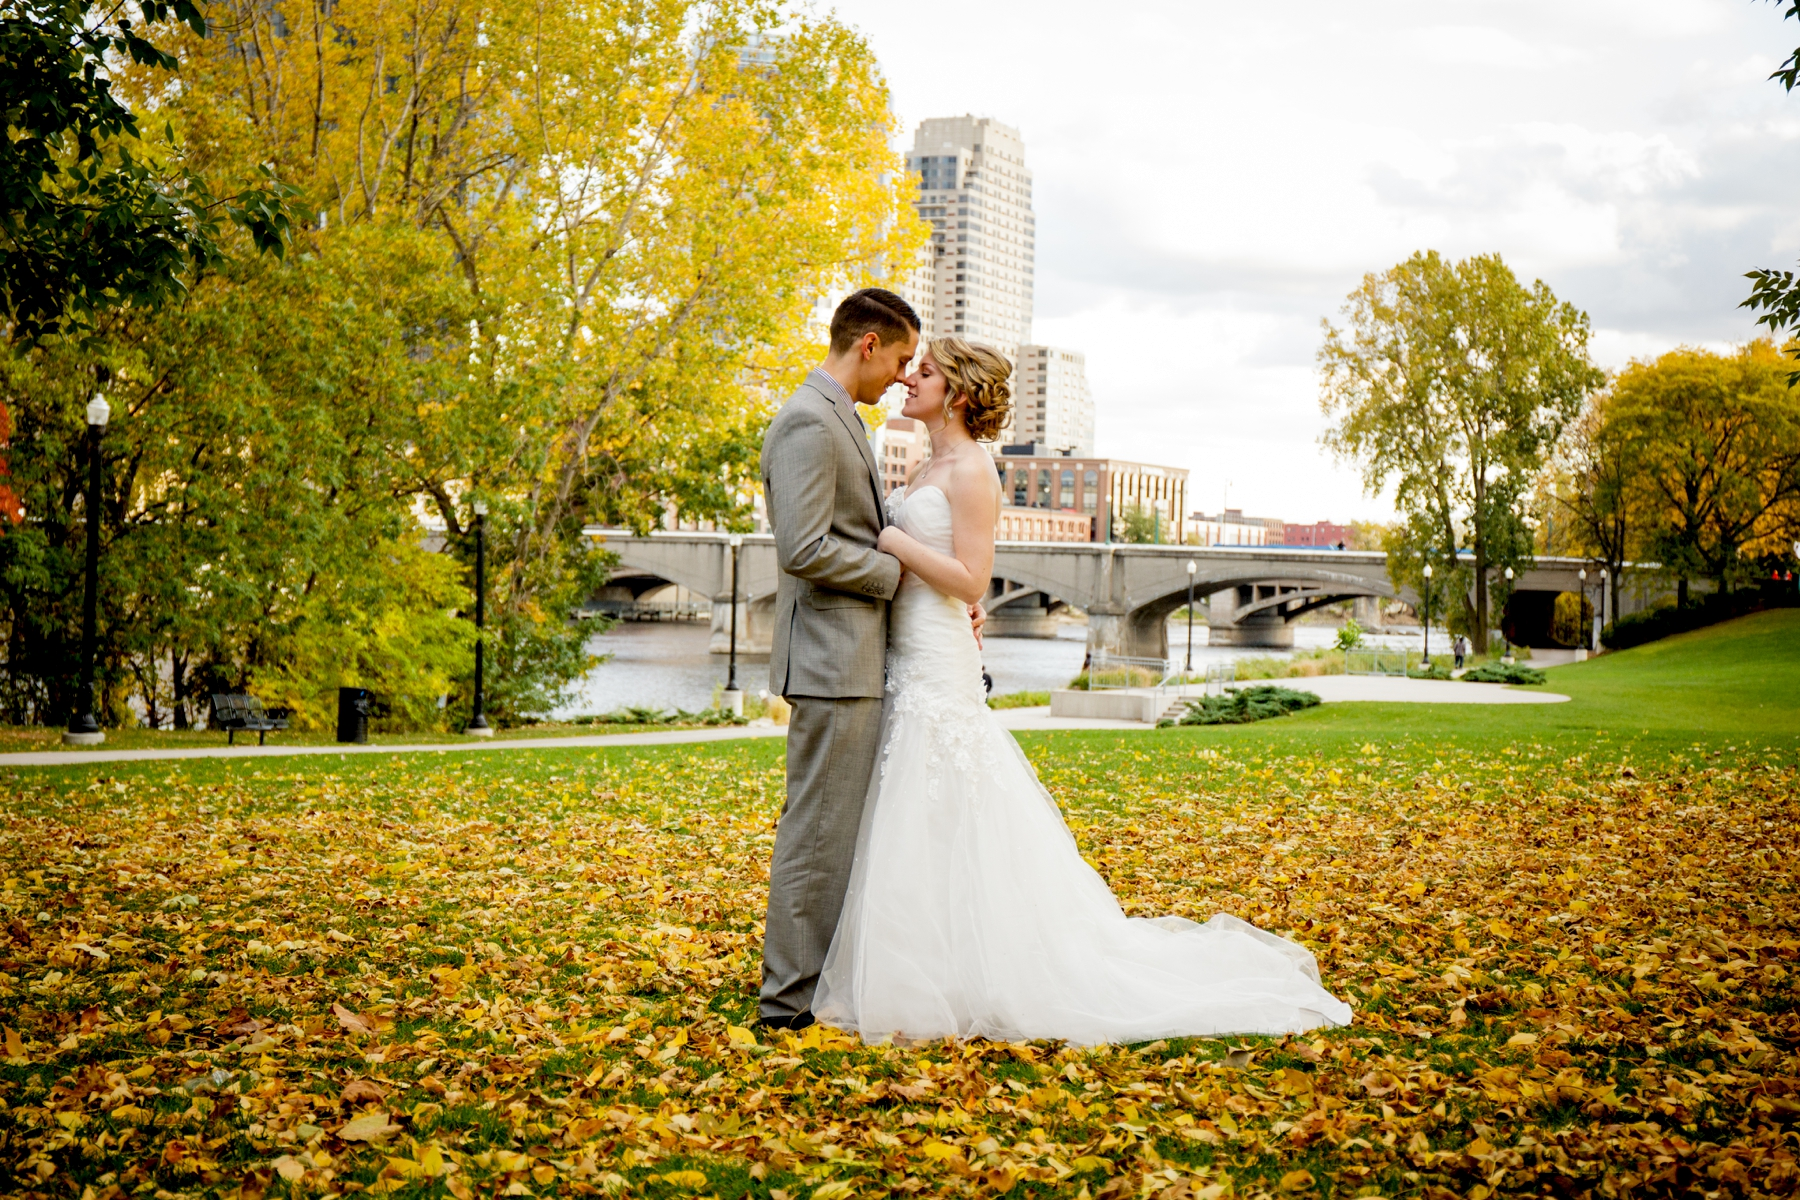 Brandon_Shafer_Photography_Kristen_Corey_Downtown_Grand_Rapids_Fall_Wedding0039.JPG